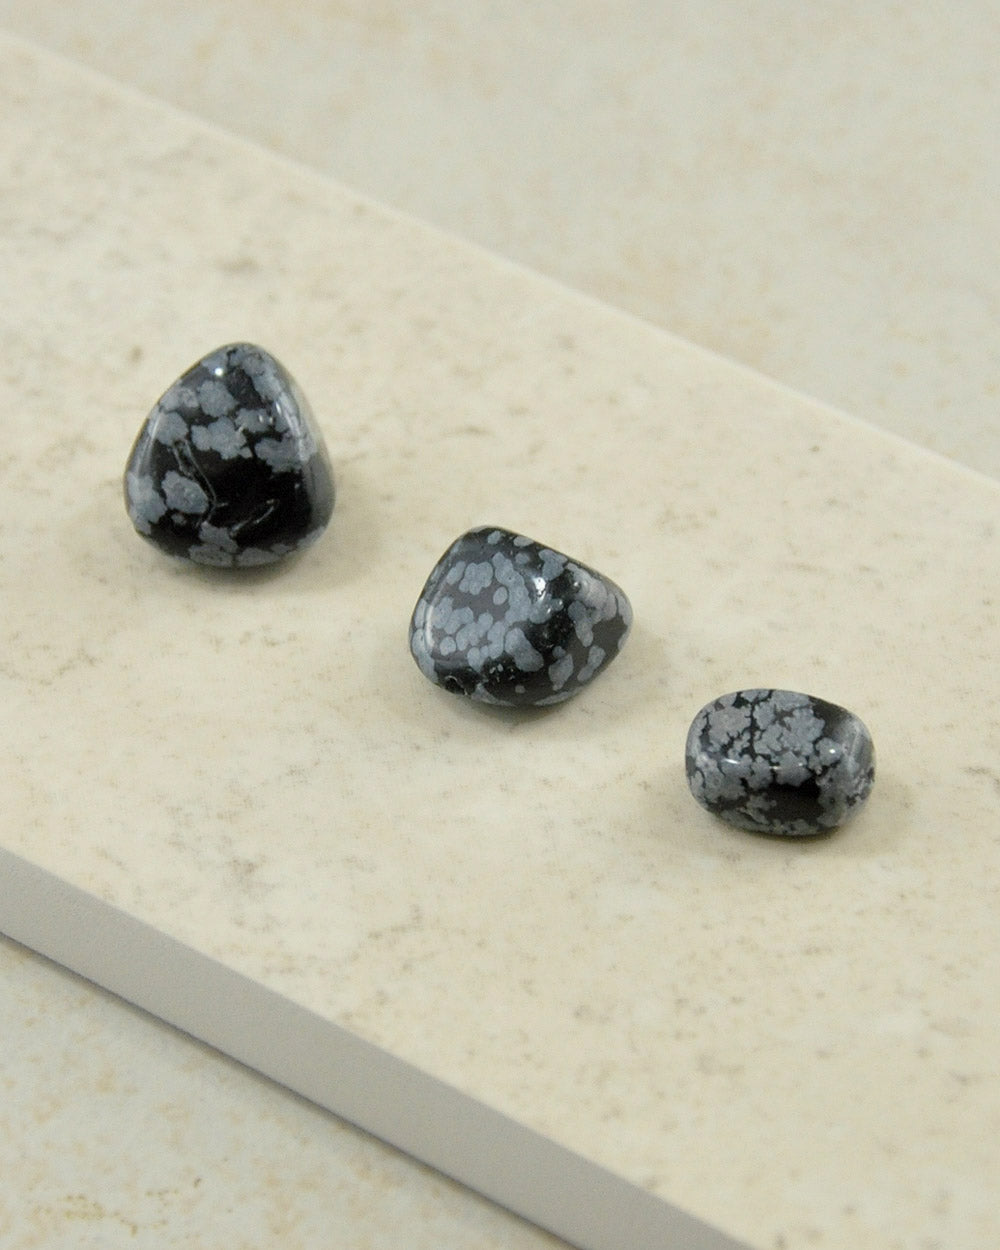 Snowflake Obsidian Tumble Stones - Set of 3